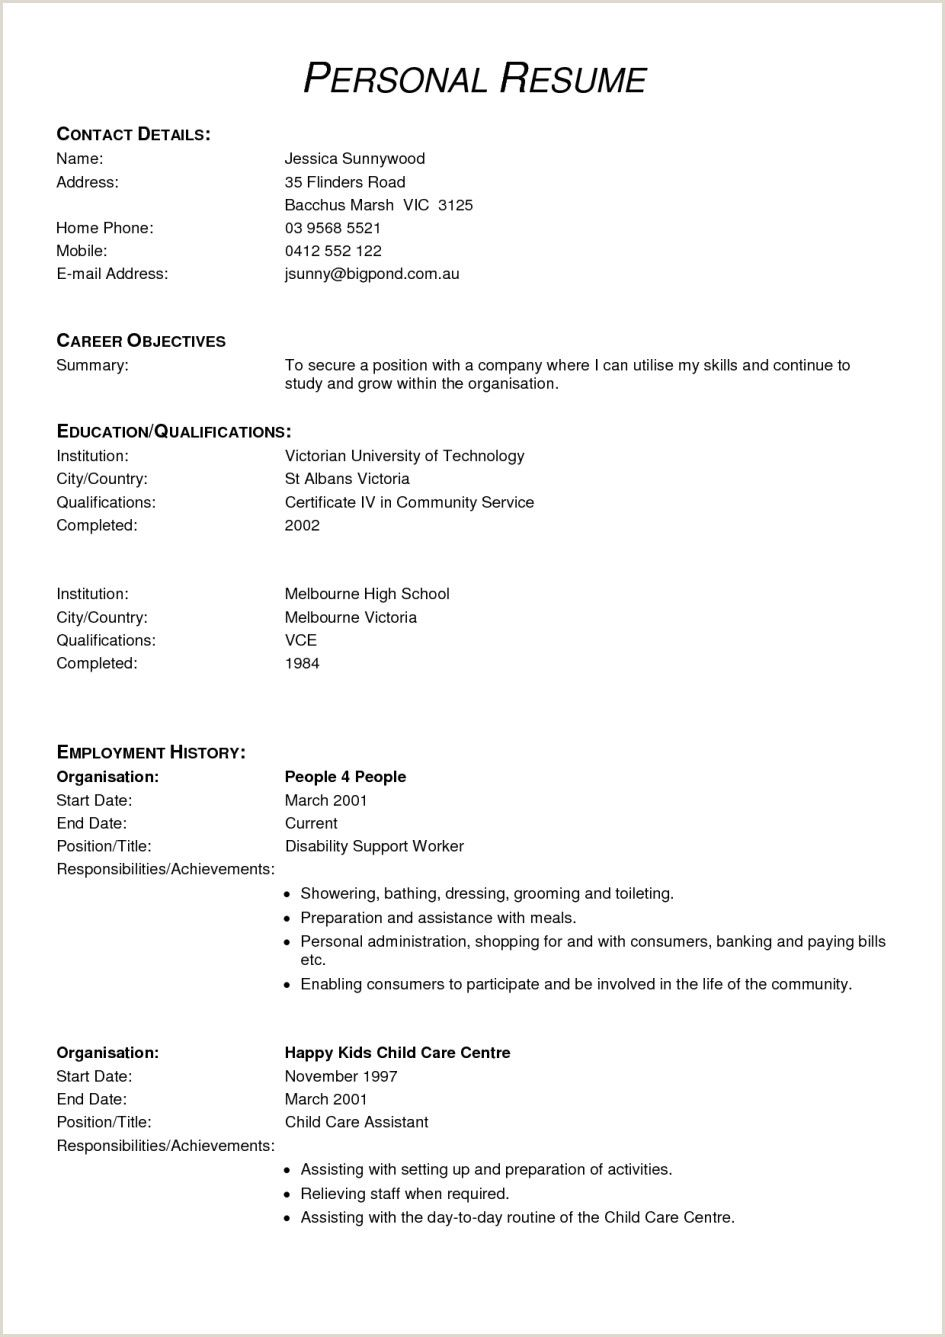 medical receptionist resume objective samples best examples job for assistant career Resume Receptionist Job Objective For Resume